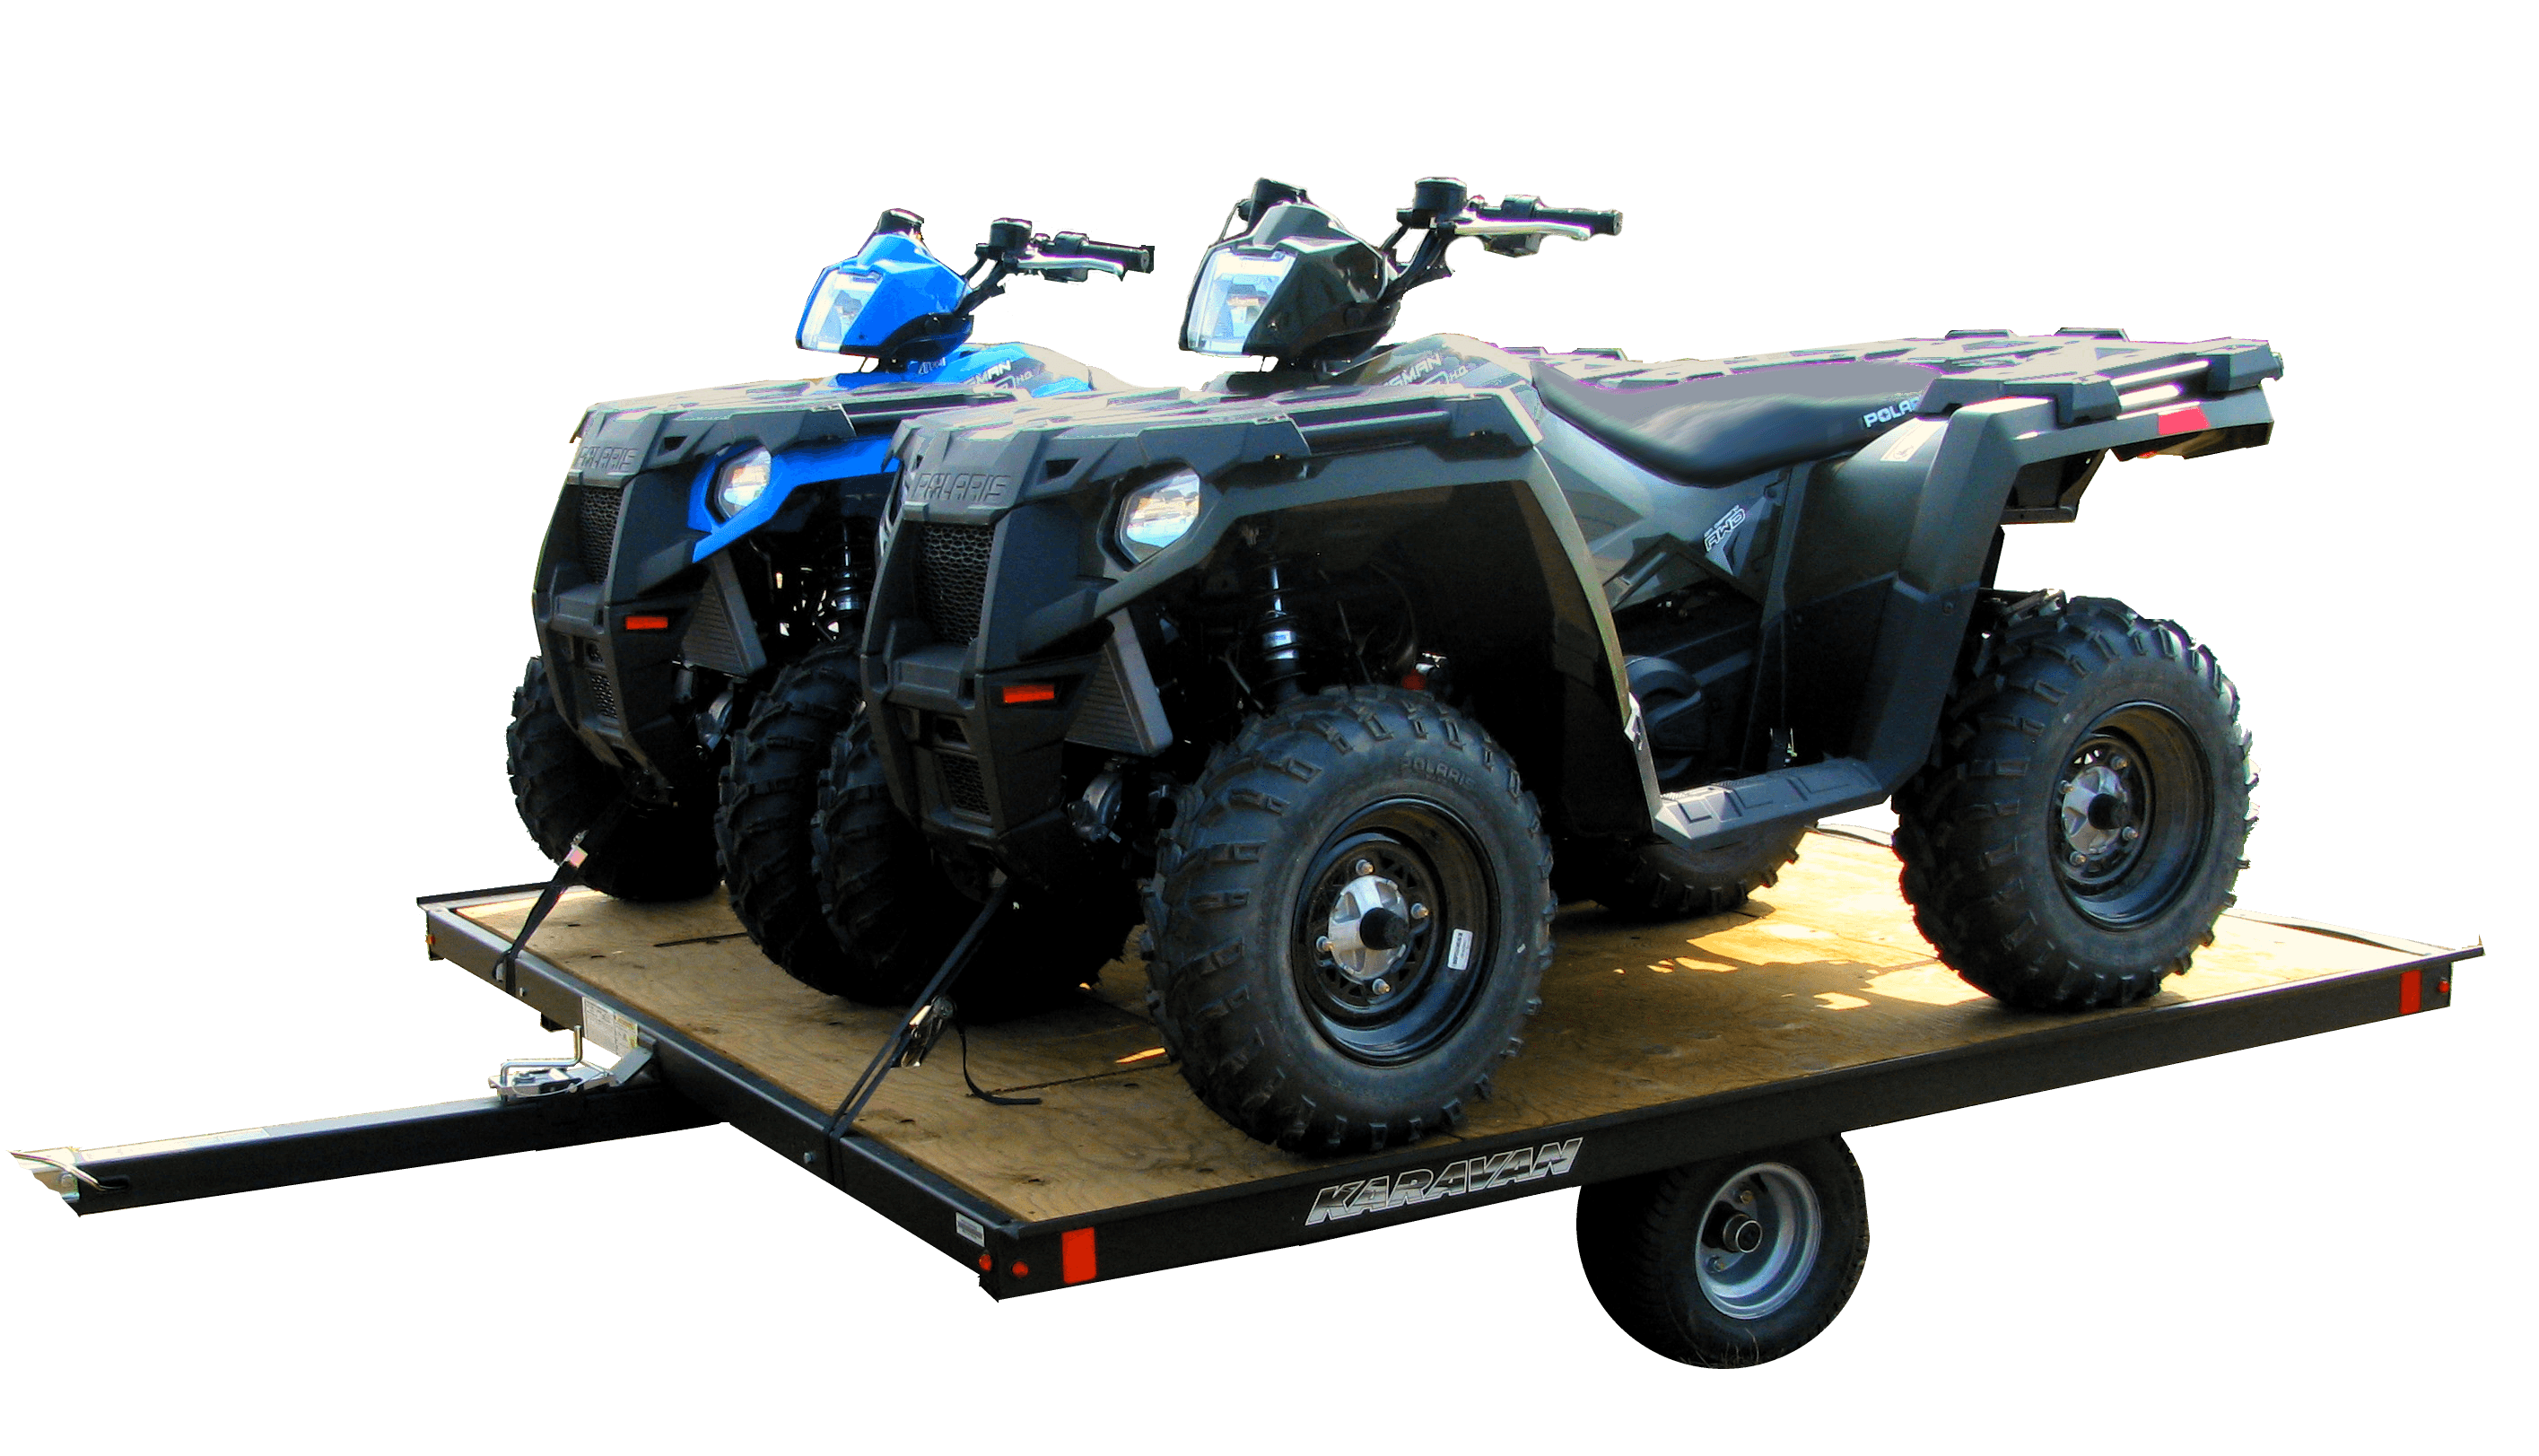 100   sportsman atvs quads 4 wheelers   homemade stuff on your quad atvconnection com atv rover rancher owners manual rover rancher owners manual